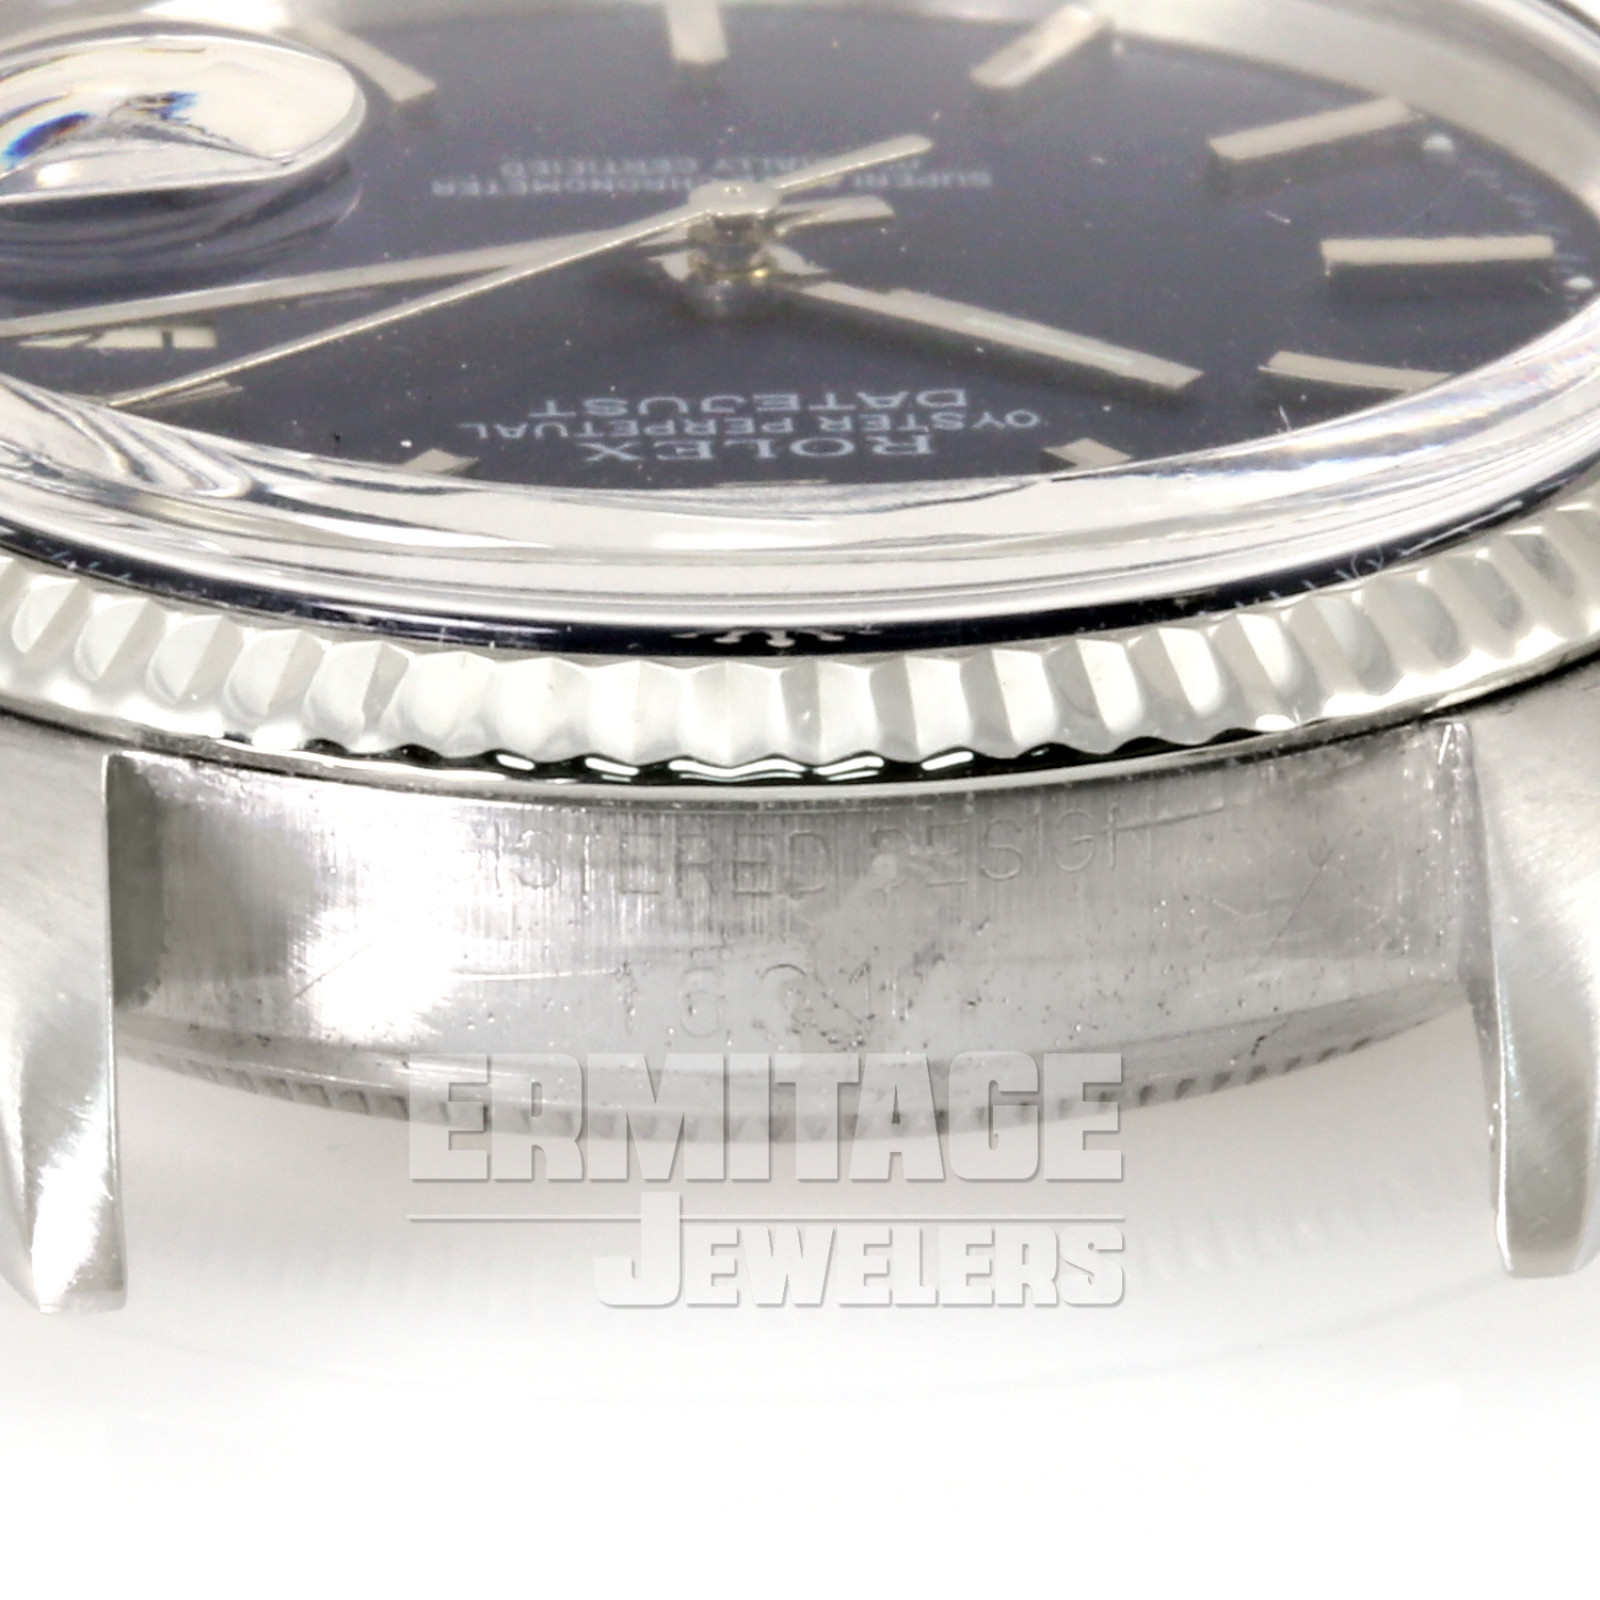 Rolex Datejust 1601 with Blue Dial